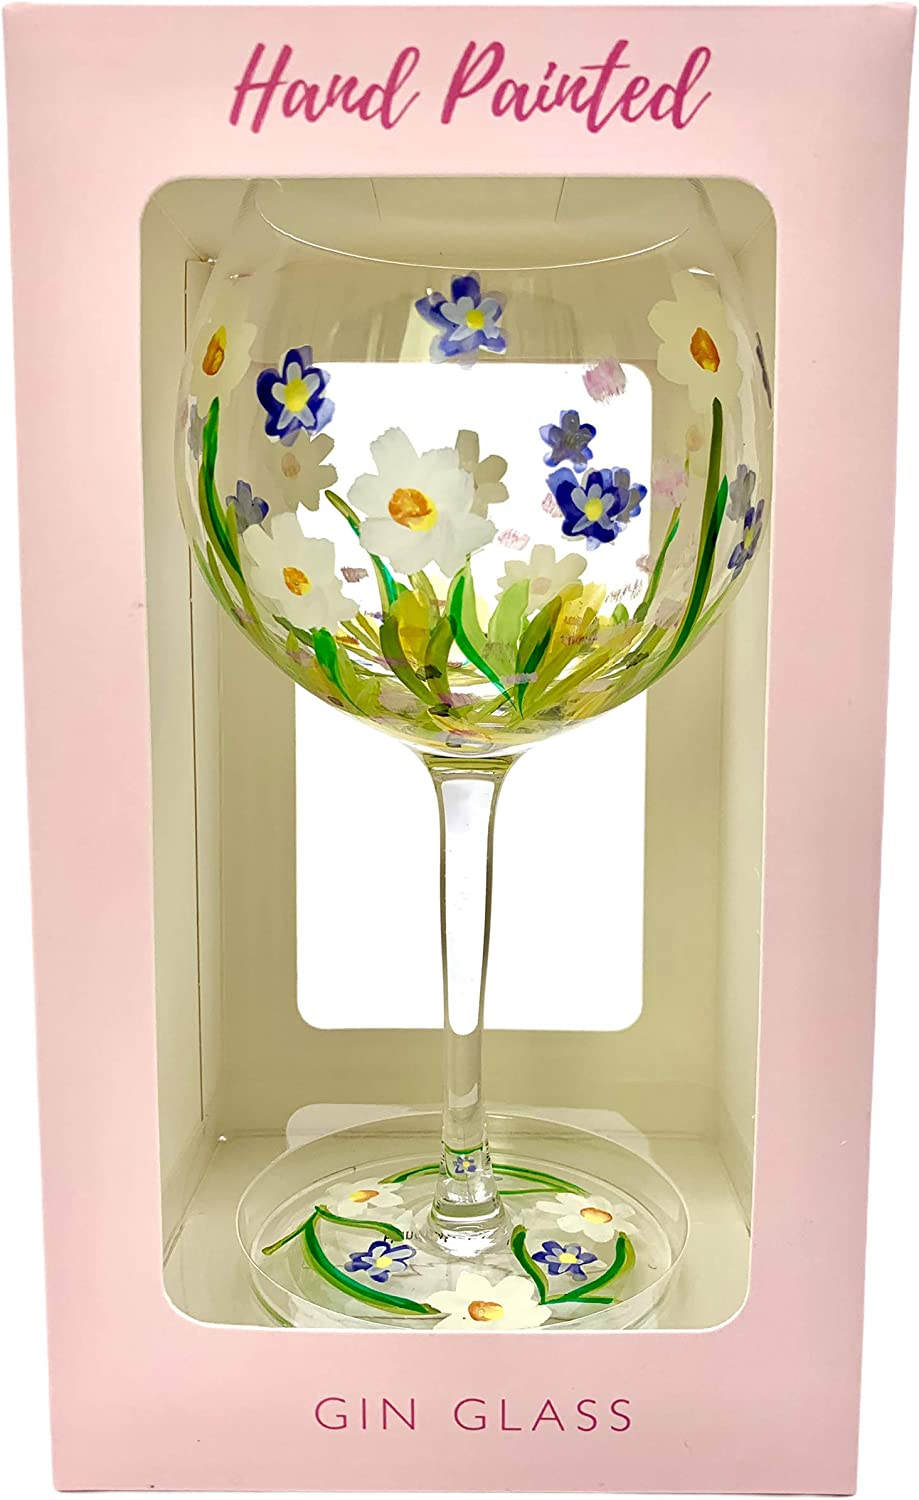 Truenova Hand Painted by Lynsey Johnstone Dainty Daisies Balloon Gin Glass Gift Boxed